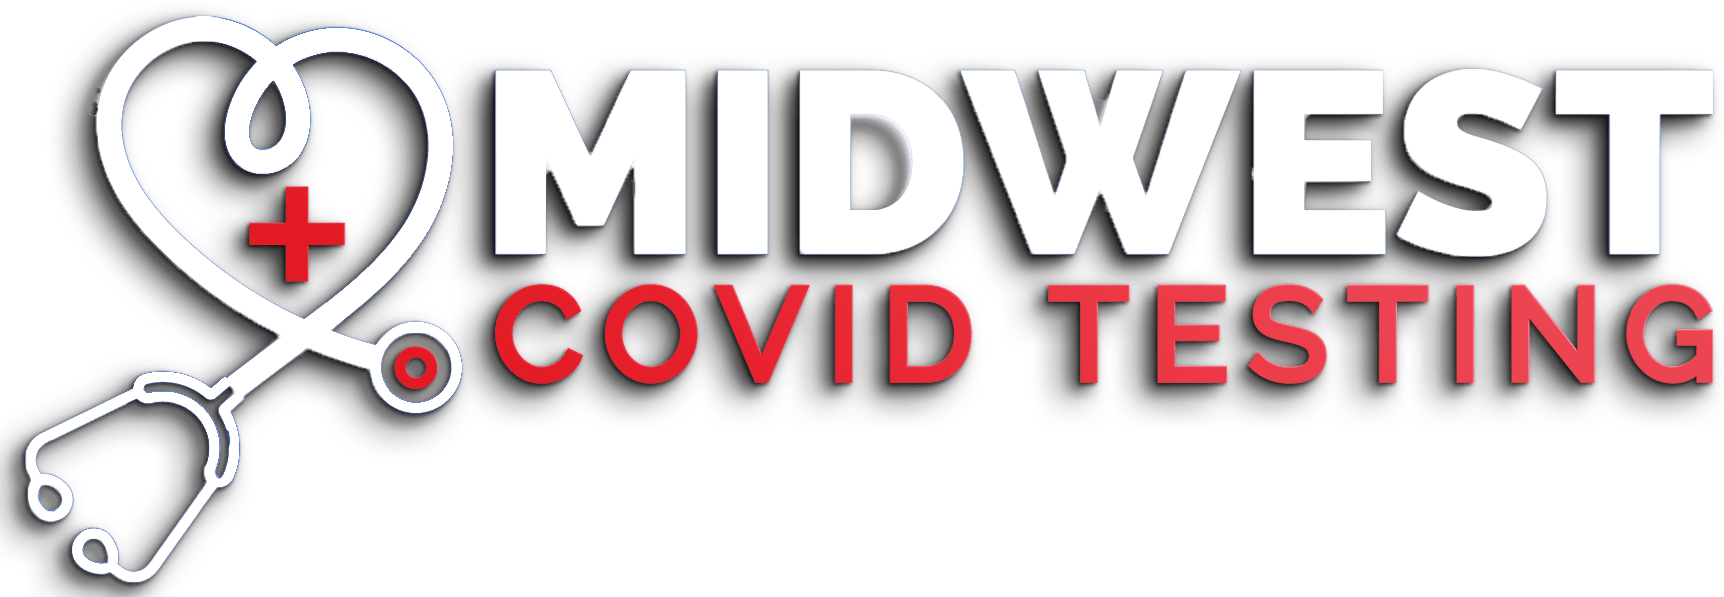 COVID Testing in Lombard, IL | Midwest Covid Testing Midwest Covid Testing | Rapid Chicago Covid Testing